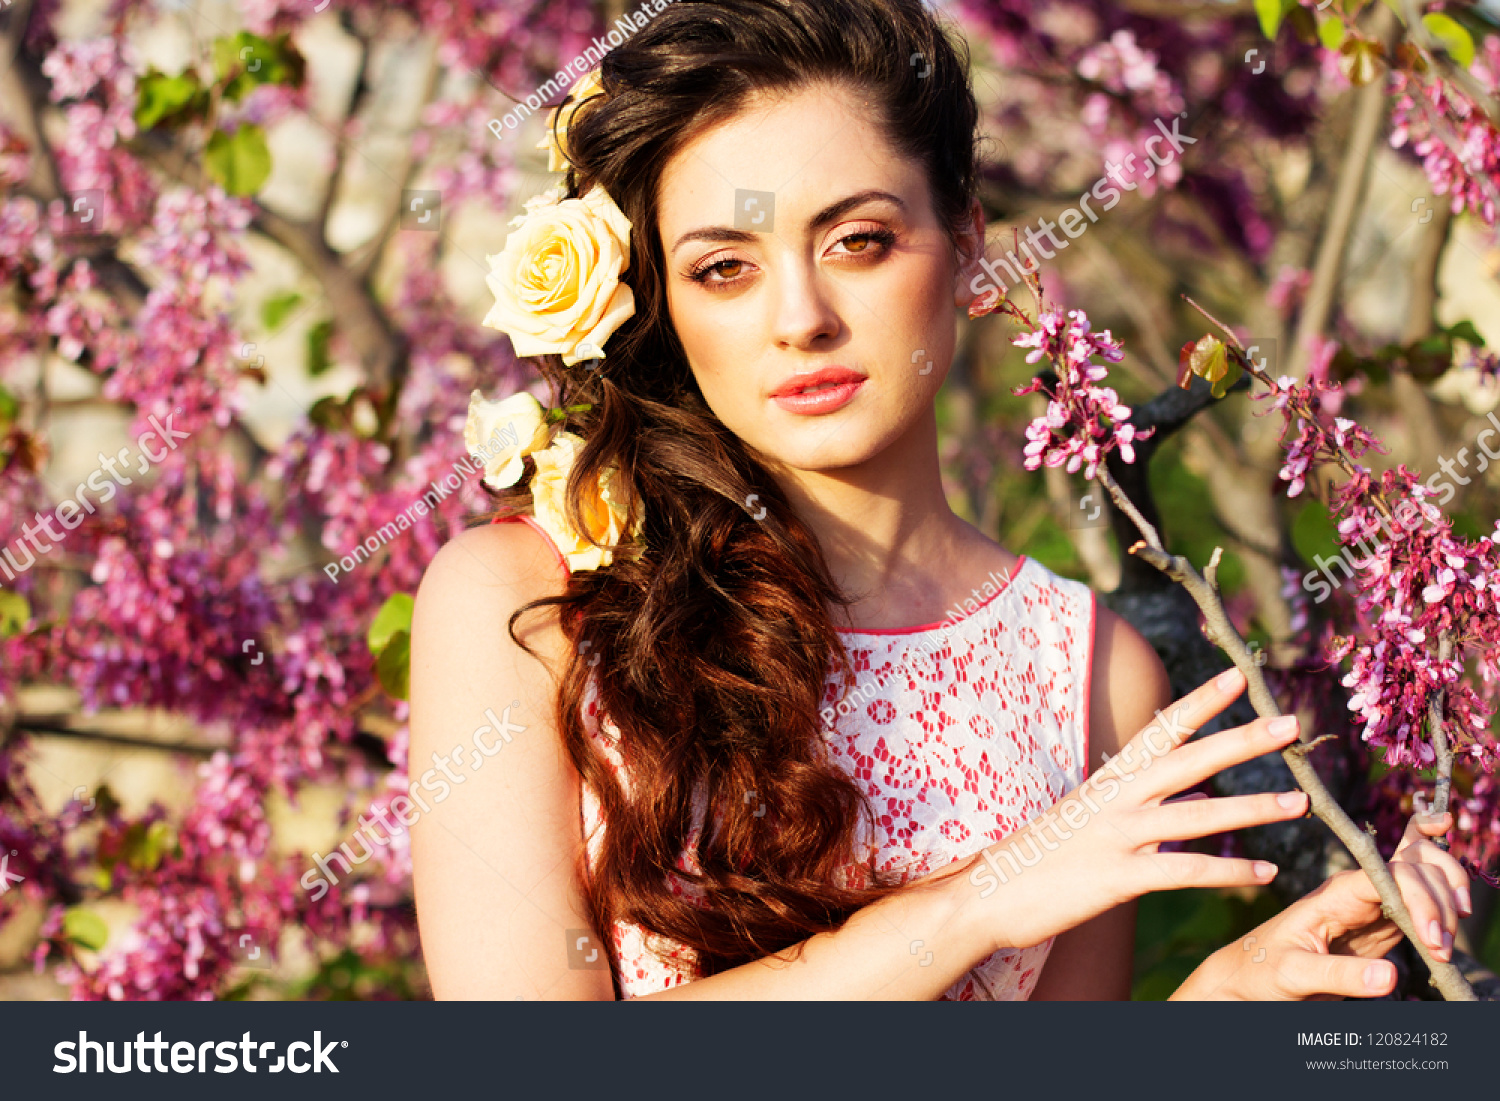 Beautiful woman flowers her hair stock photo 120824182 shutterstock beautiful woman with flowers in her hair dhlflorist Gallery